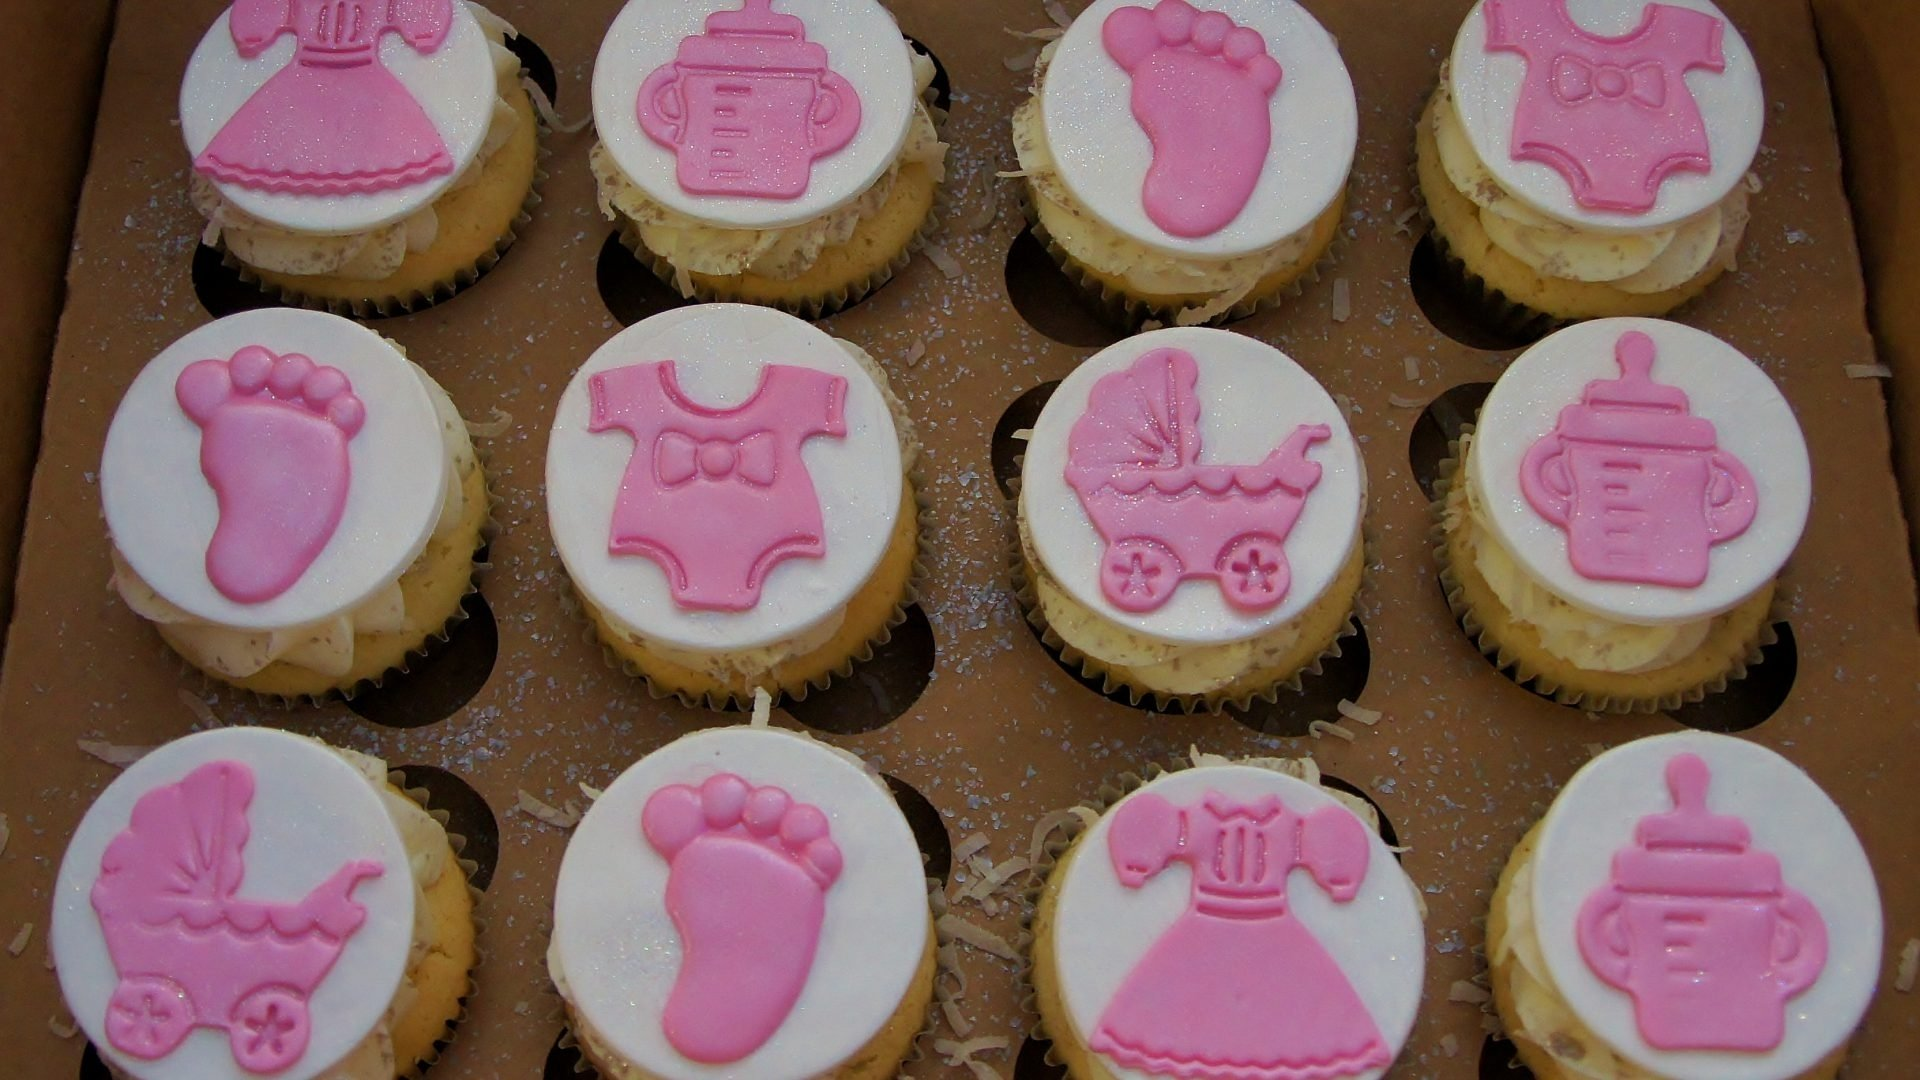 10 Ideal Baby Shower Cupcake Ideas For A Girl